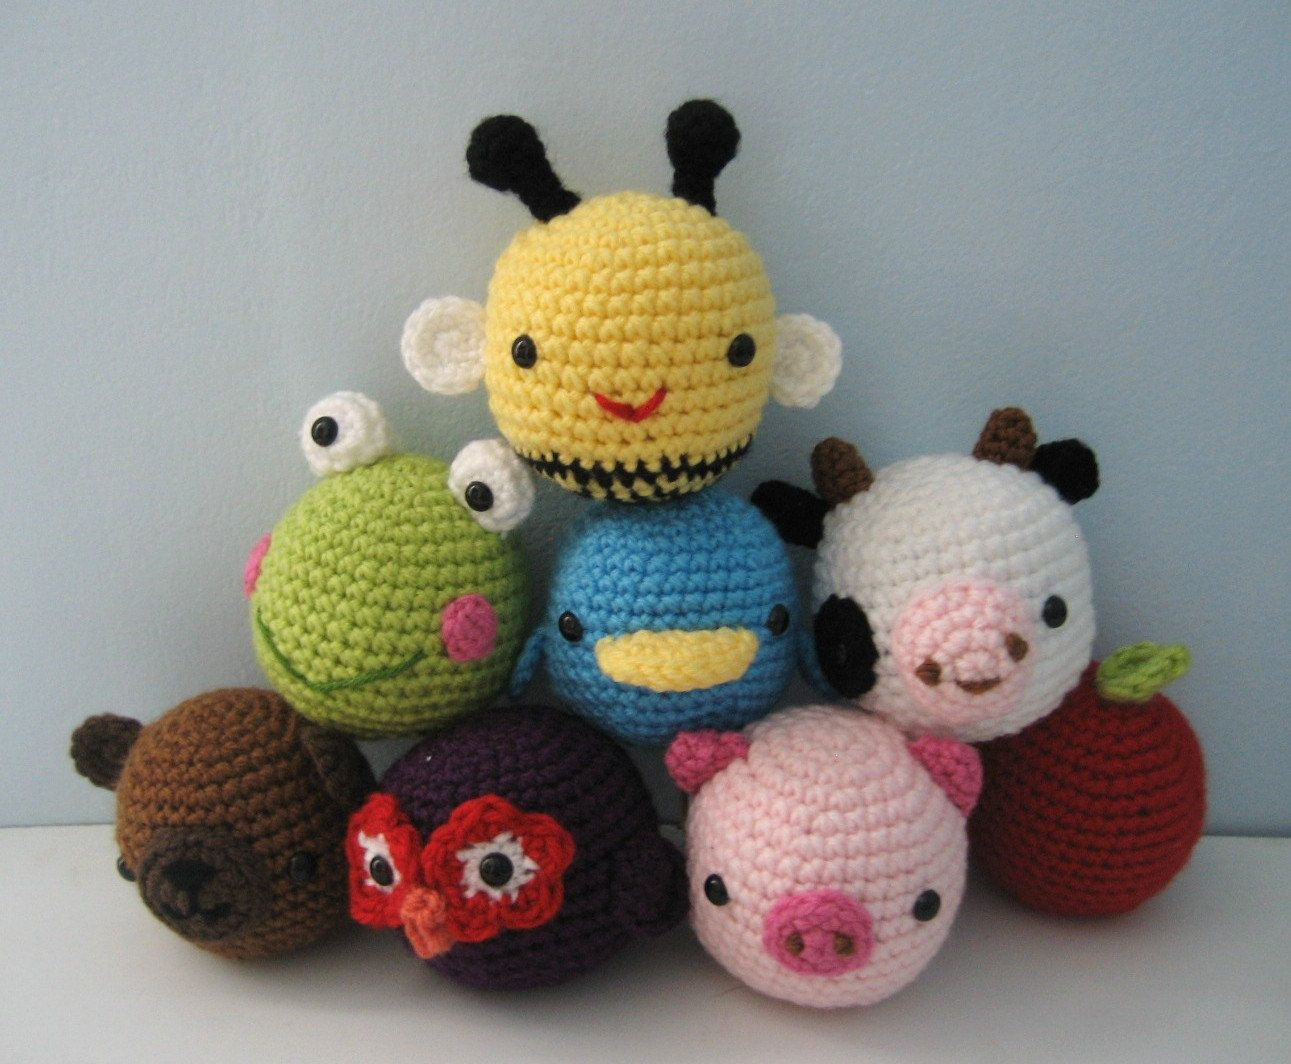 Amigurumi Crochet Animal Toys for Baby Pattern Digital Download ...